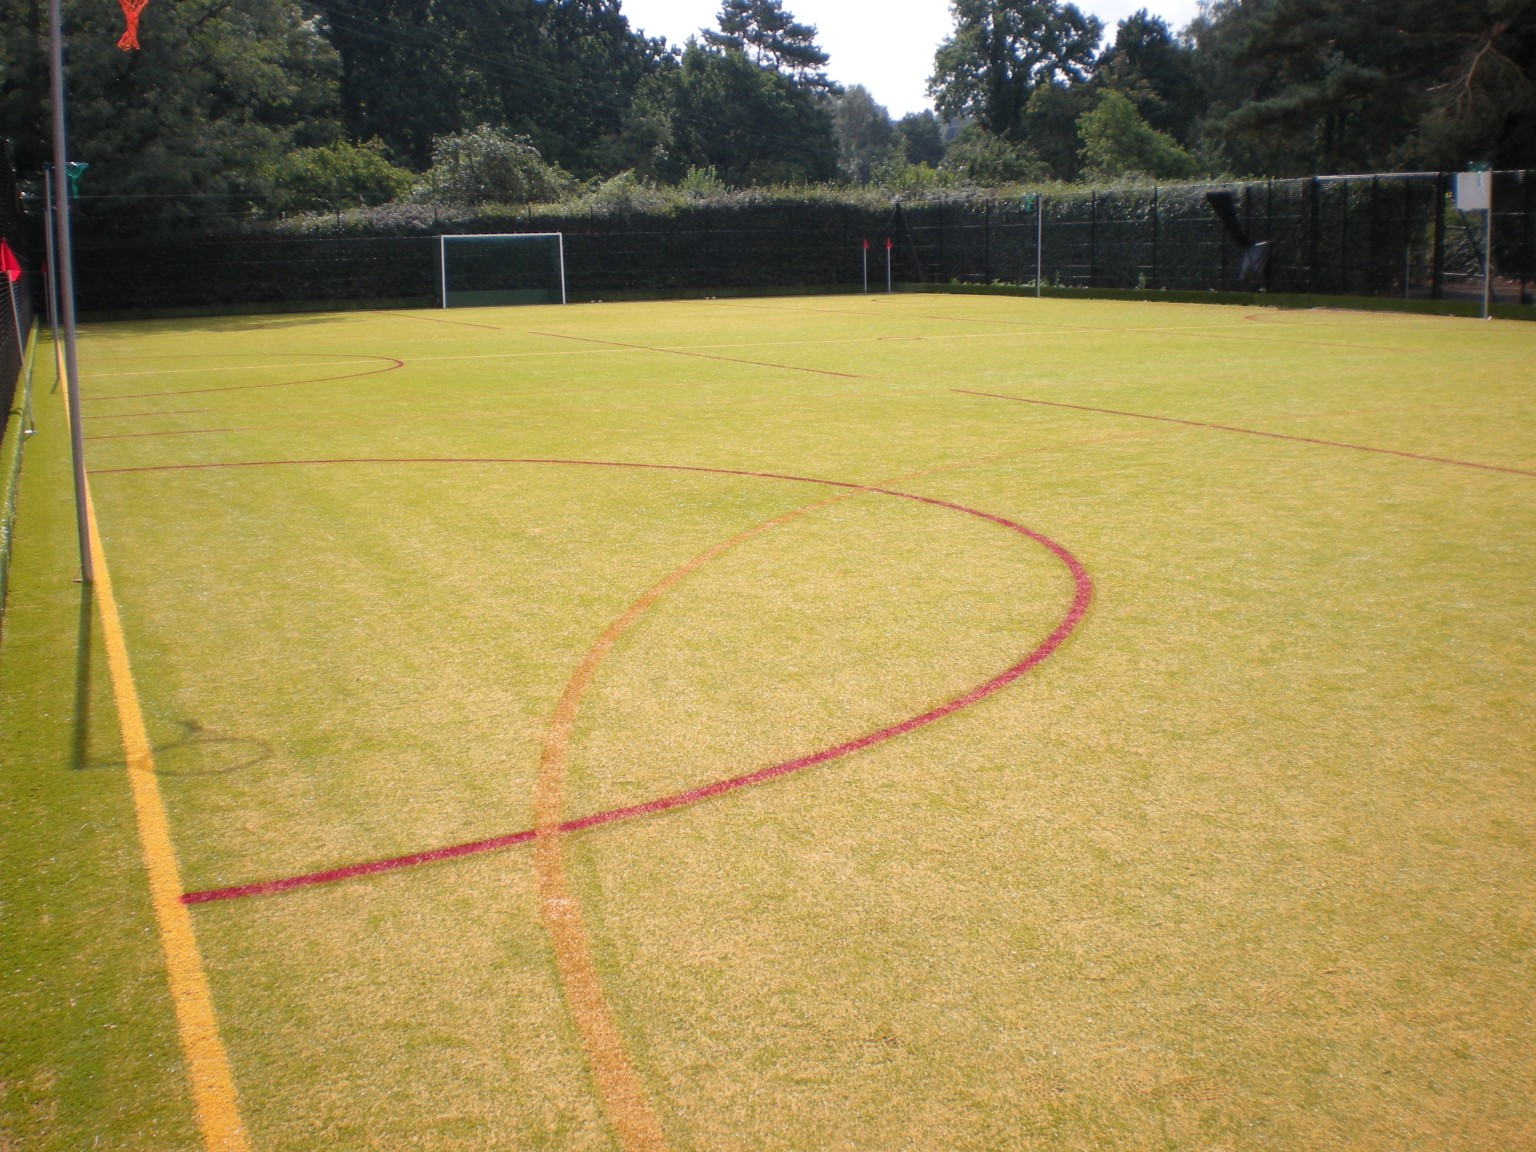 A MUGA pitch can be finished with multiple markings on the artificial grass surface.